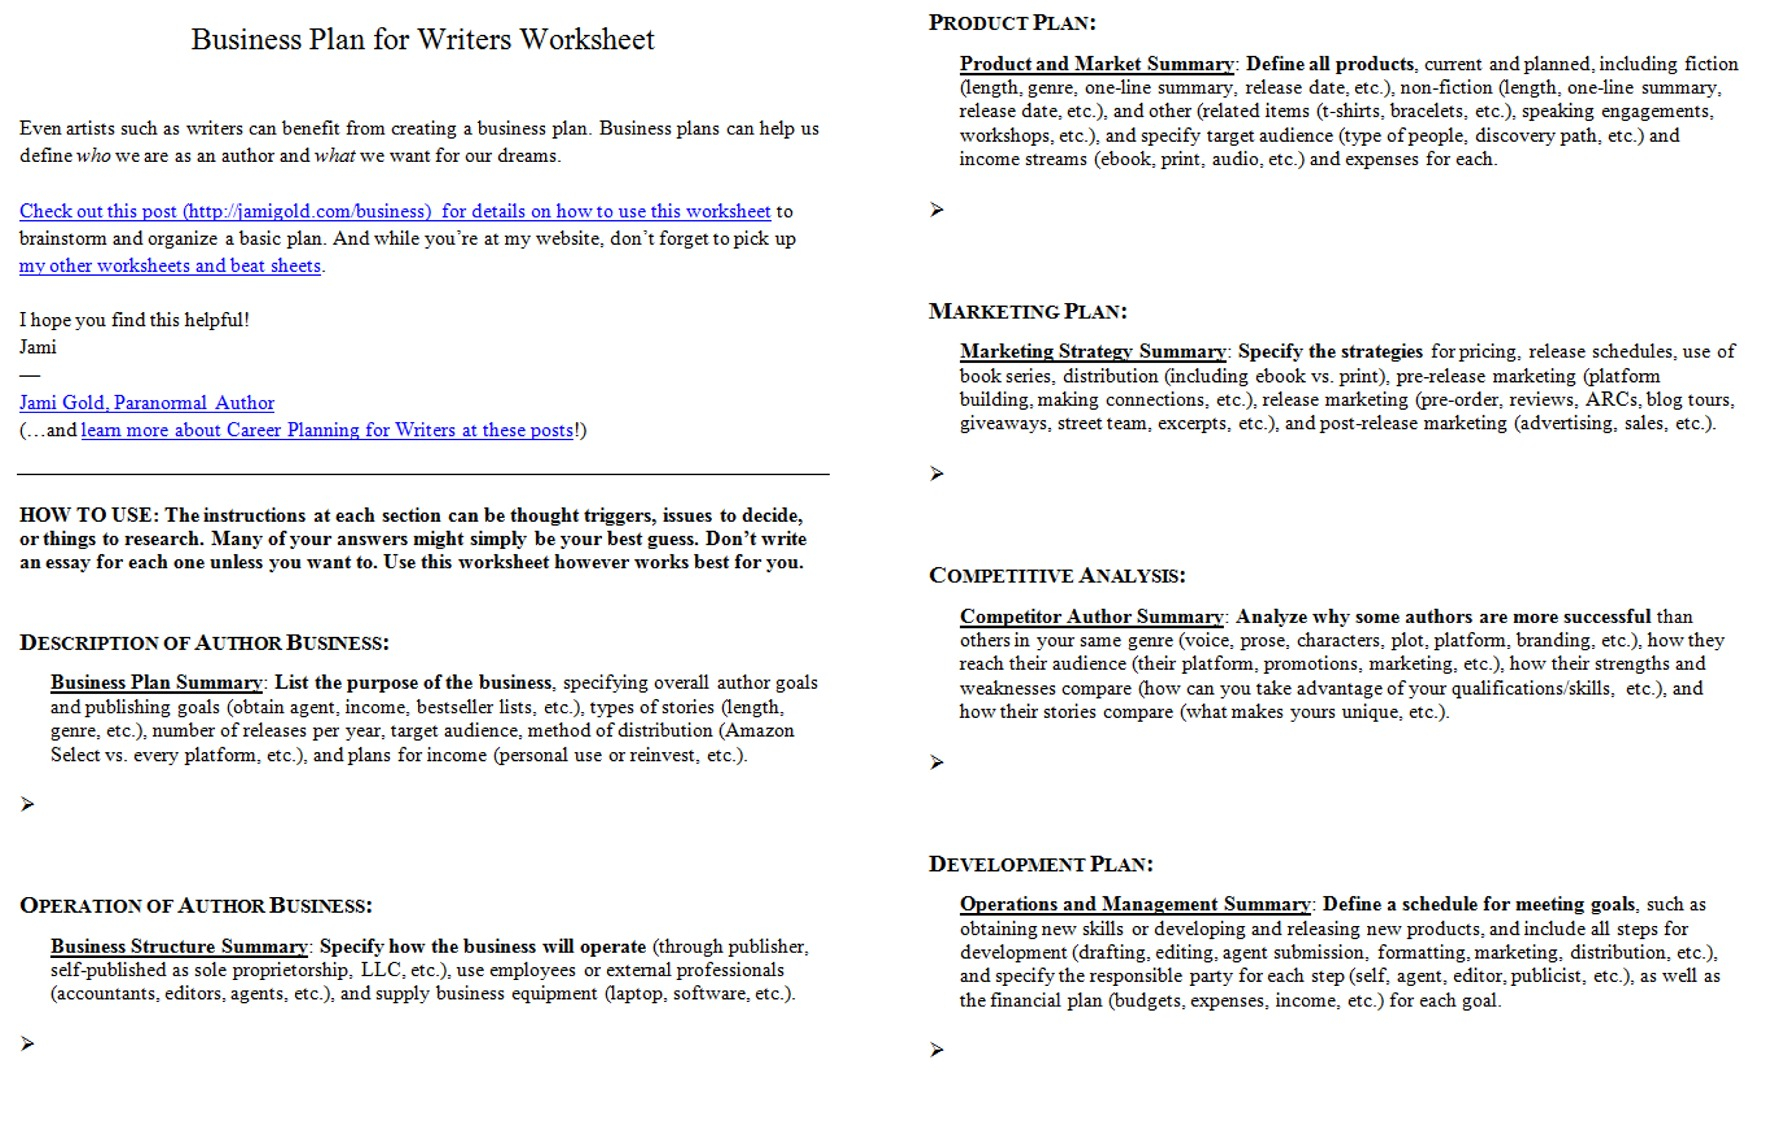 Aldiablosus  Inspiring Worksheets For Writers  Jami Gold Paranormal Author With Fair Screen Shot Of Both Pages Of The Business Plan For Writers Worksheet With Awesome Character Development Worksheets Also Free Division Worksheets Grade  In Addition Lattice Math Worksheets And Language Arts Worksheets St Grade As Well As Order Of Operations Worksheets With Answer Key Additionally Motion Graph Worksheet From Jamigoldcom With Aldiablosus  Fair Worksheets For Writers  Jami Gold Paranormal Author With Awesome Screen Shot Of Both Pages Of The Business Plan For Writers Worksheet And Inspiring Character Development Worksheets Also Free Division Worksheets Grade  In Addition Lattice Math Worksheets From Jamigoldcom